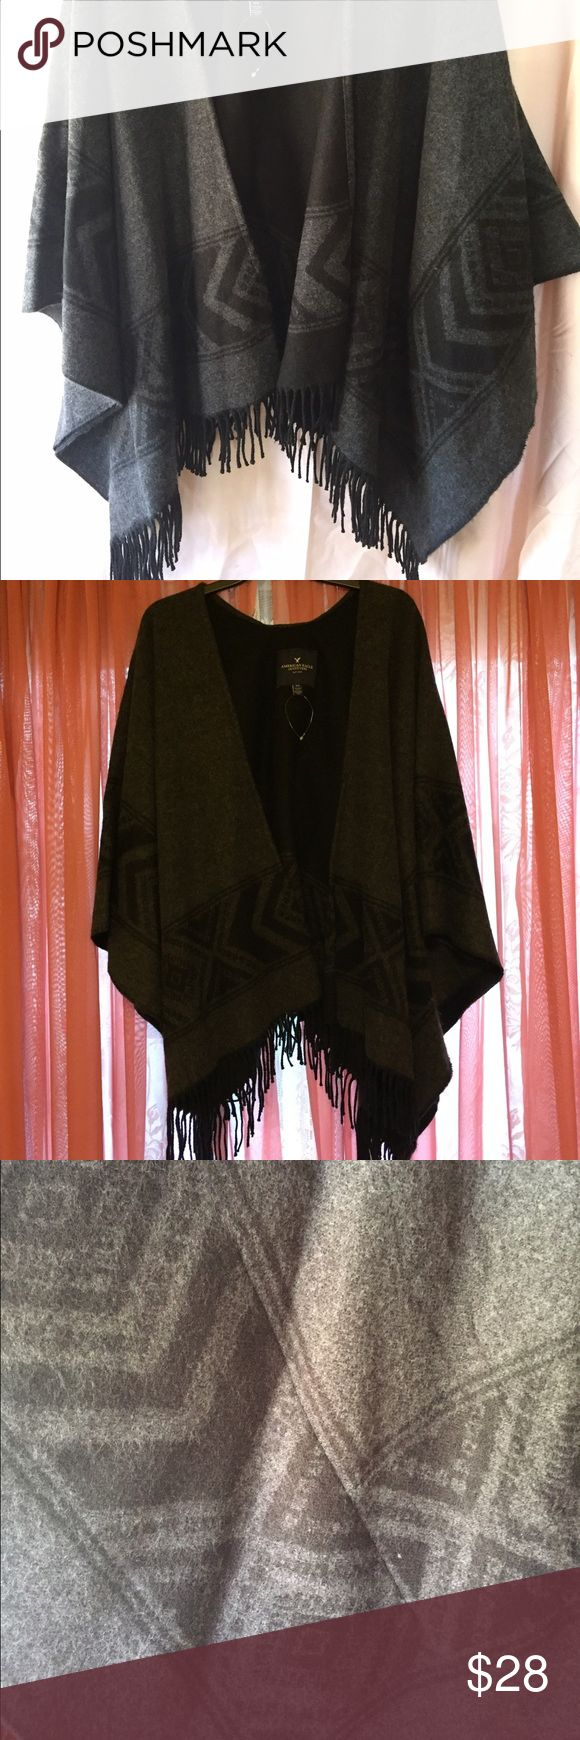 American Eagle Outfitters Poncho Like New American Eagle Poncho- Worn once! Beautiful and warm. American Eagle Outfitters Jackets & Coats Capes